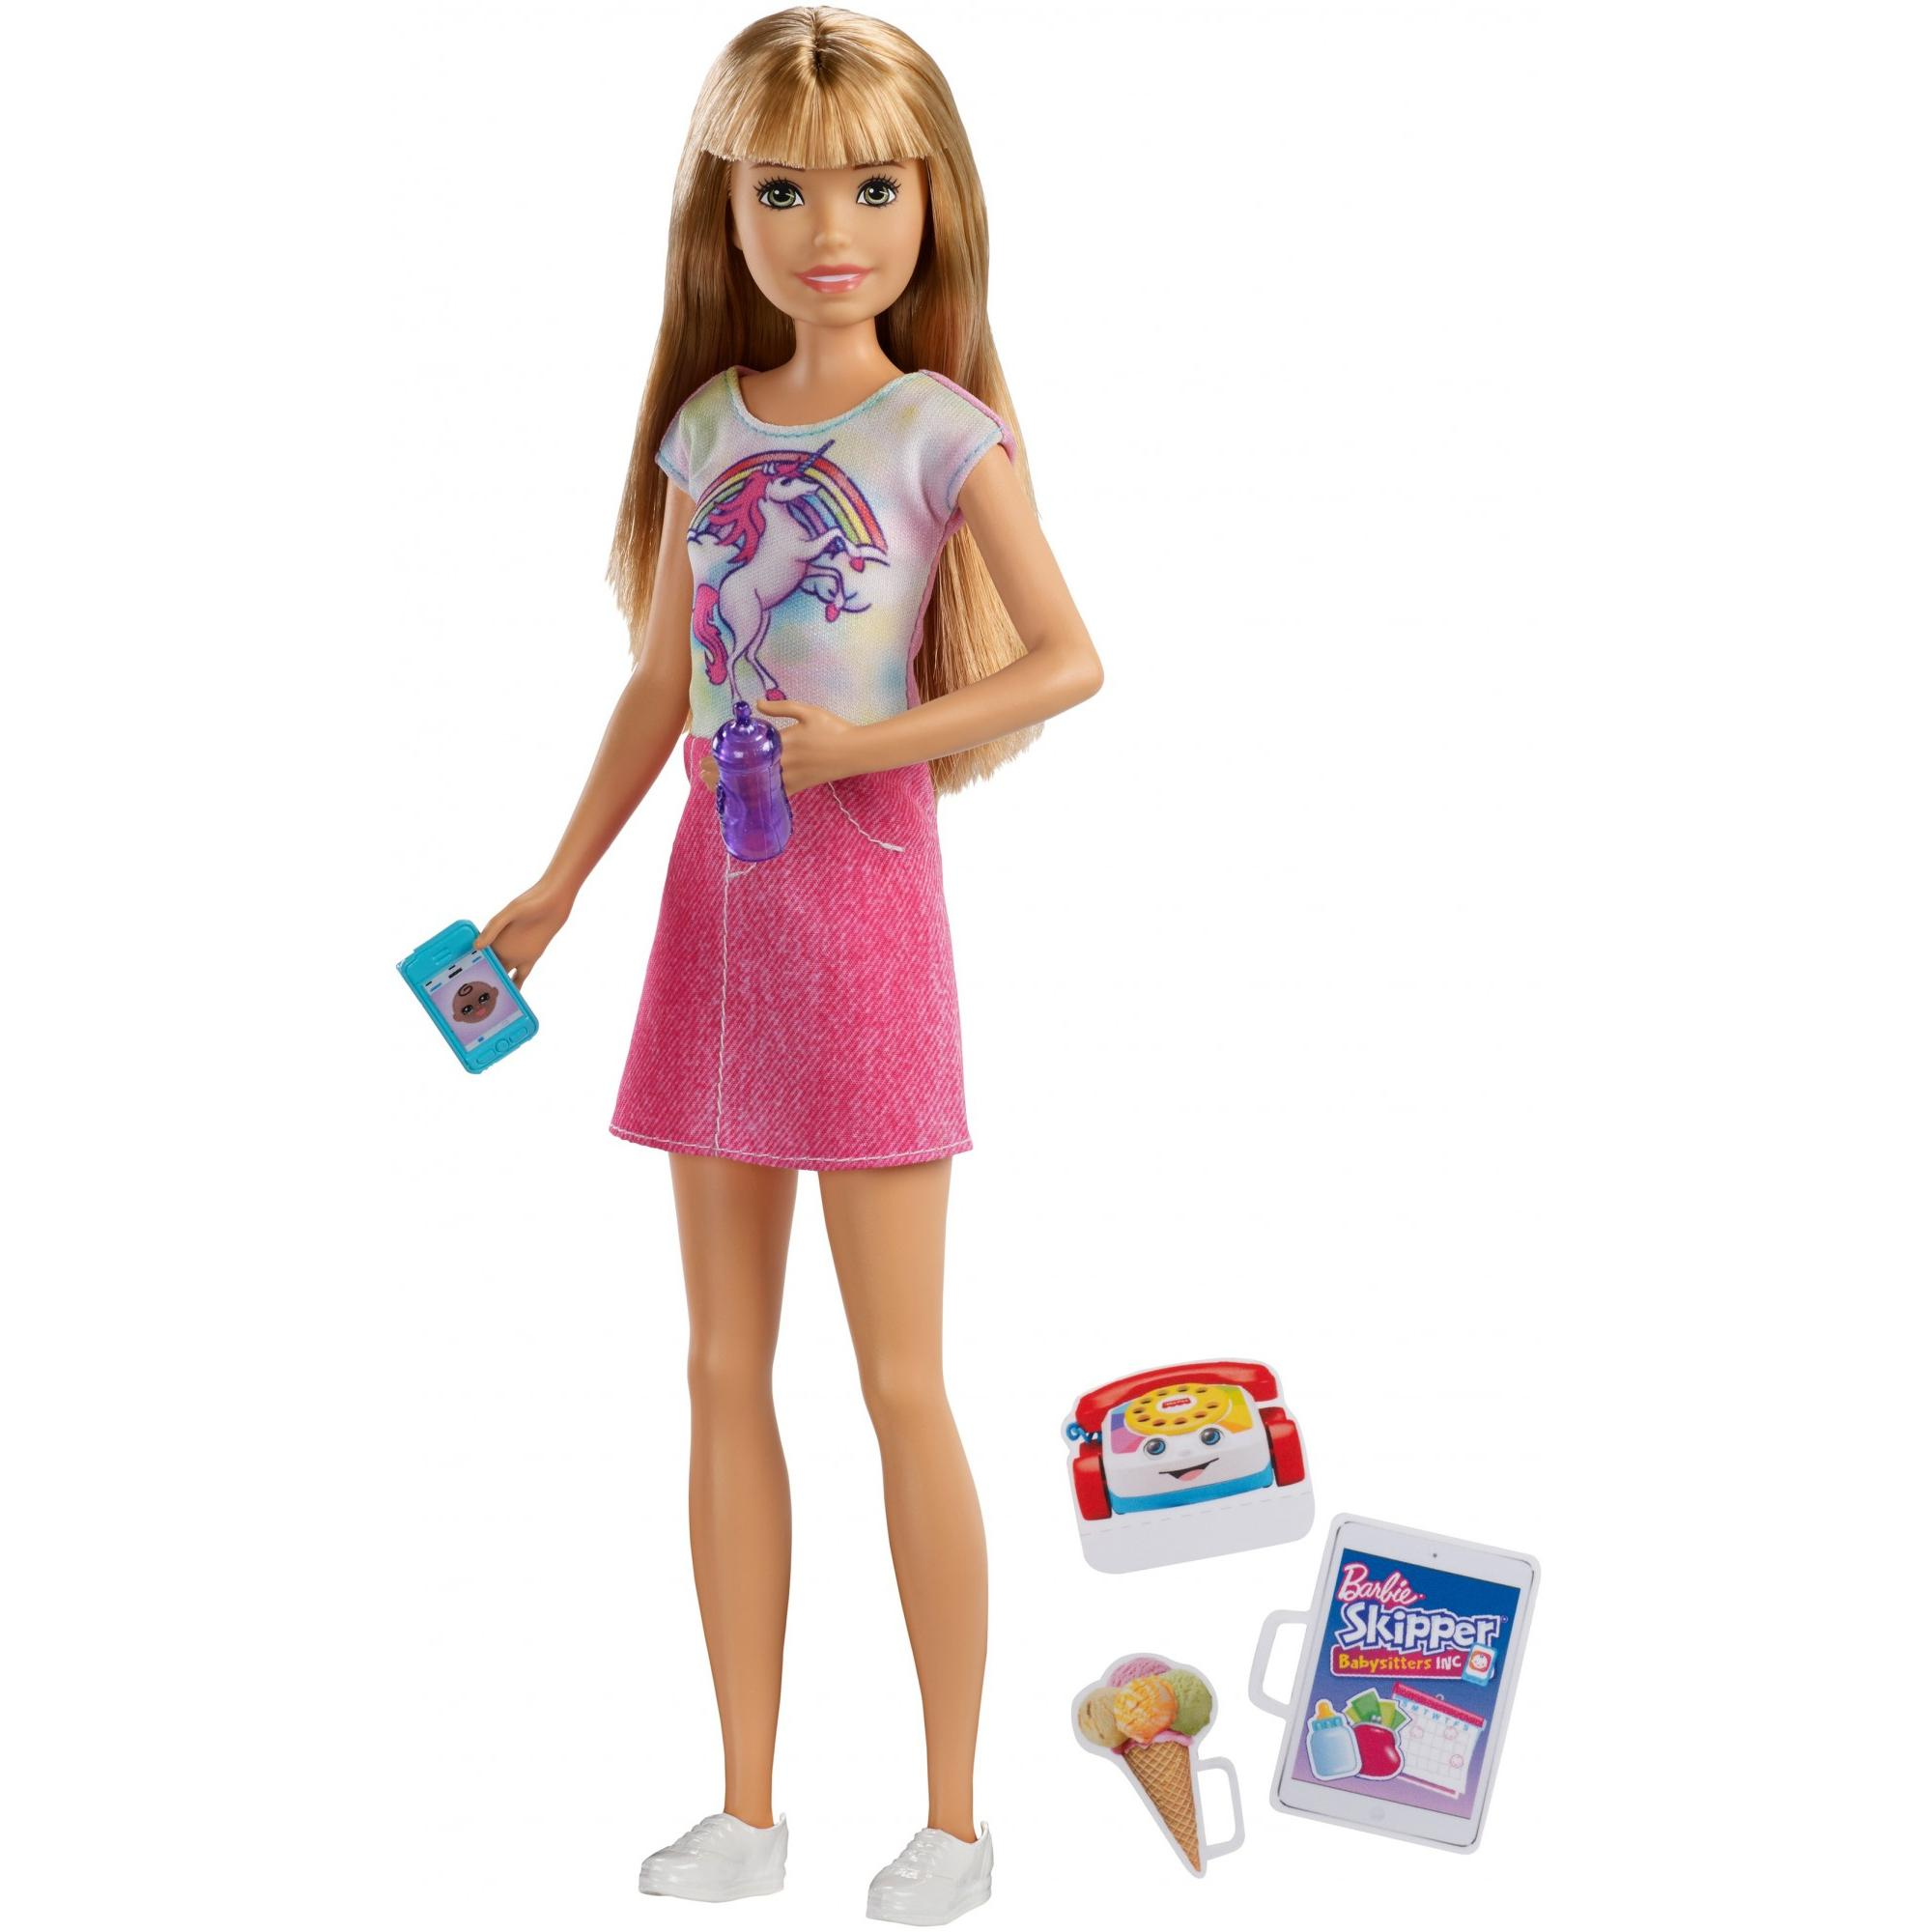 Barbie Babysitting Skipper Doll, Blonde with Phone and Baby Bottle